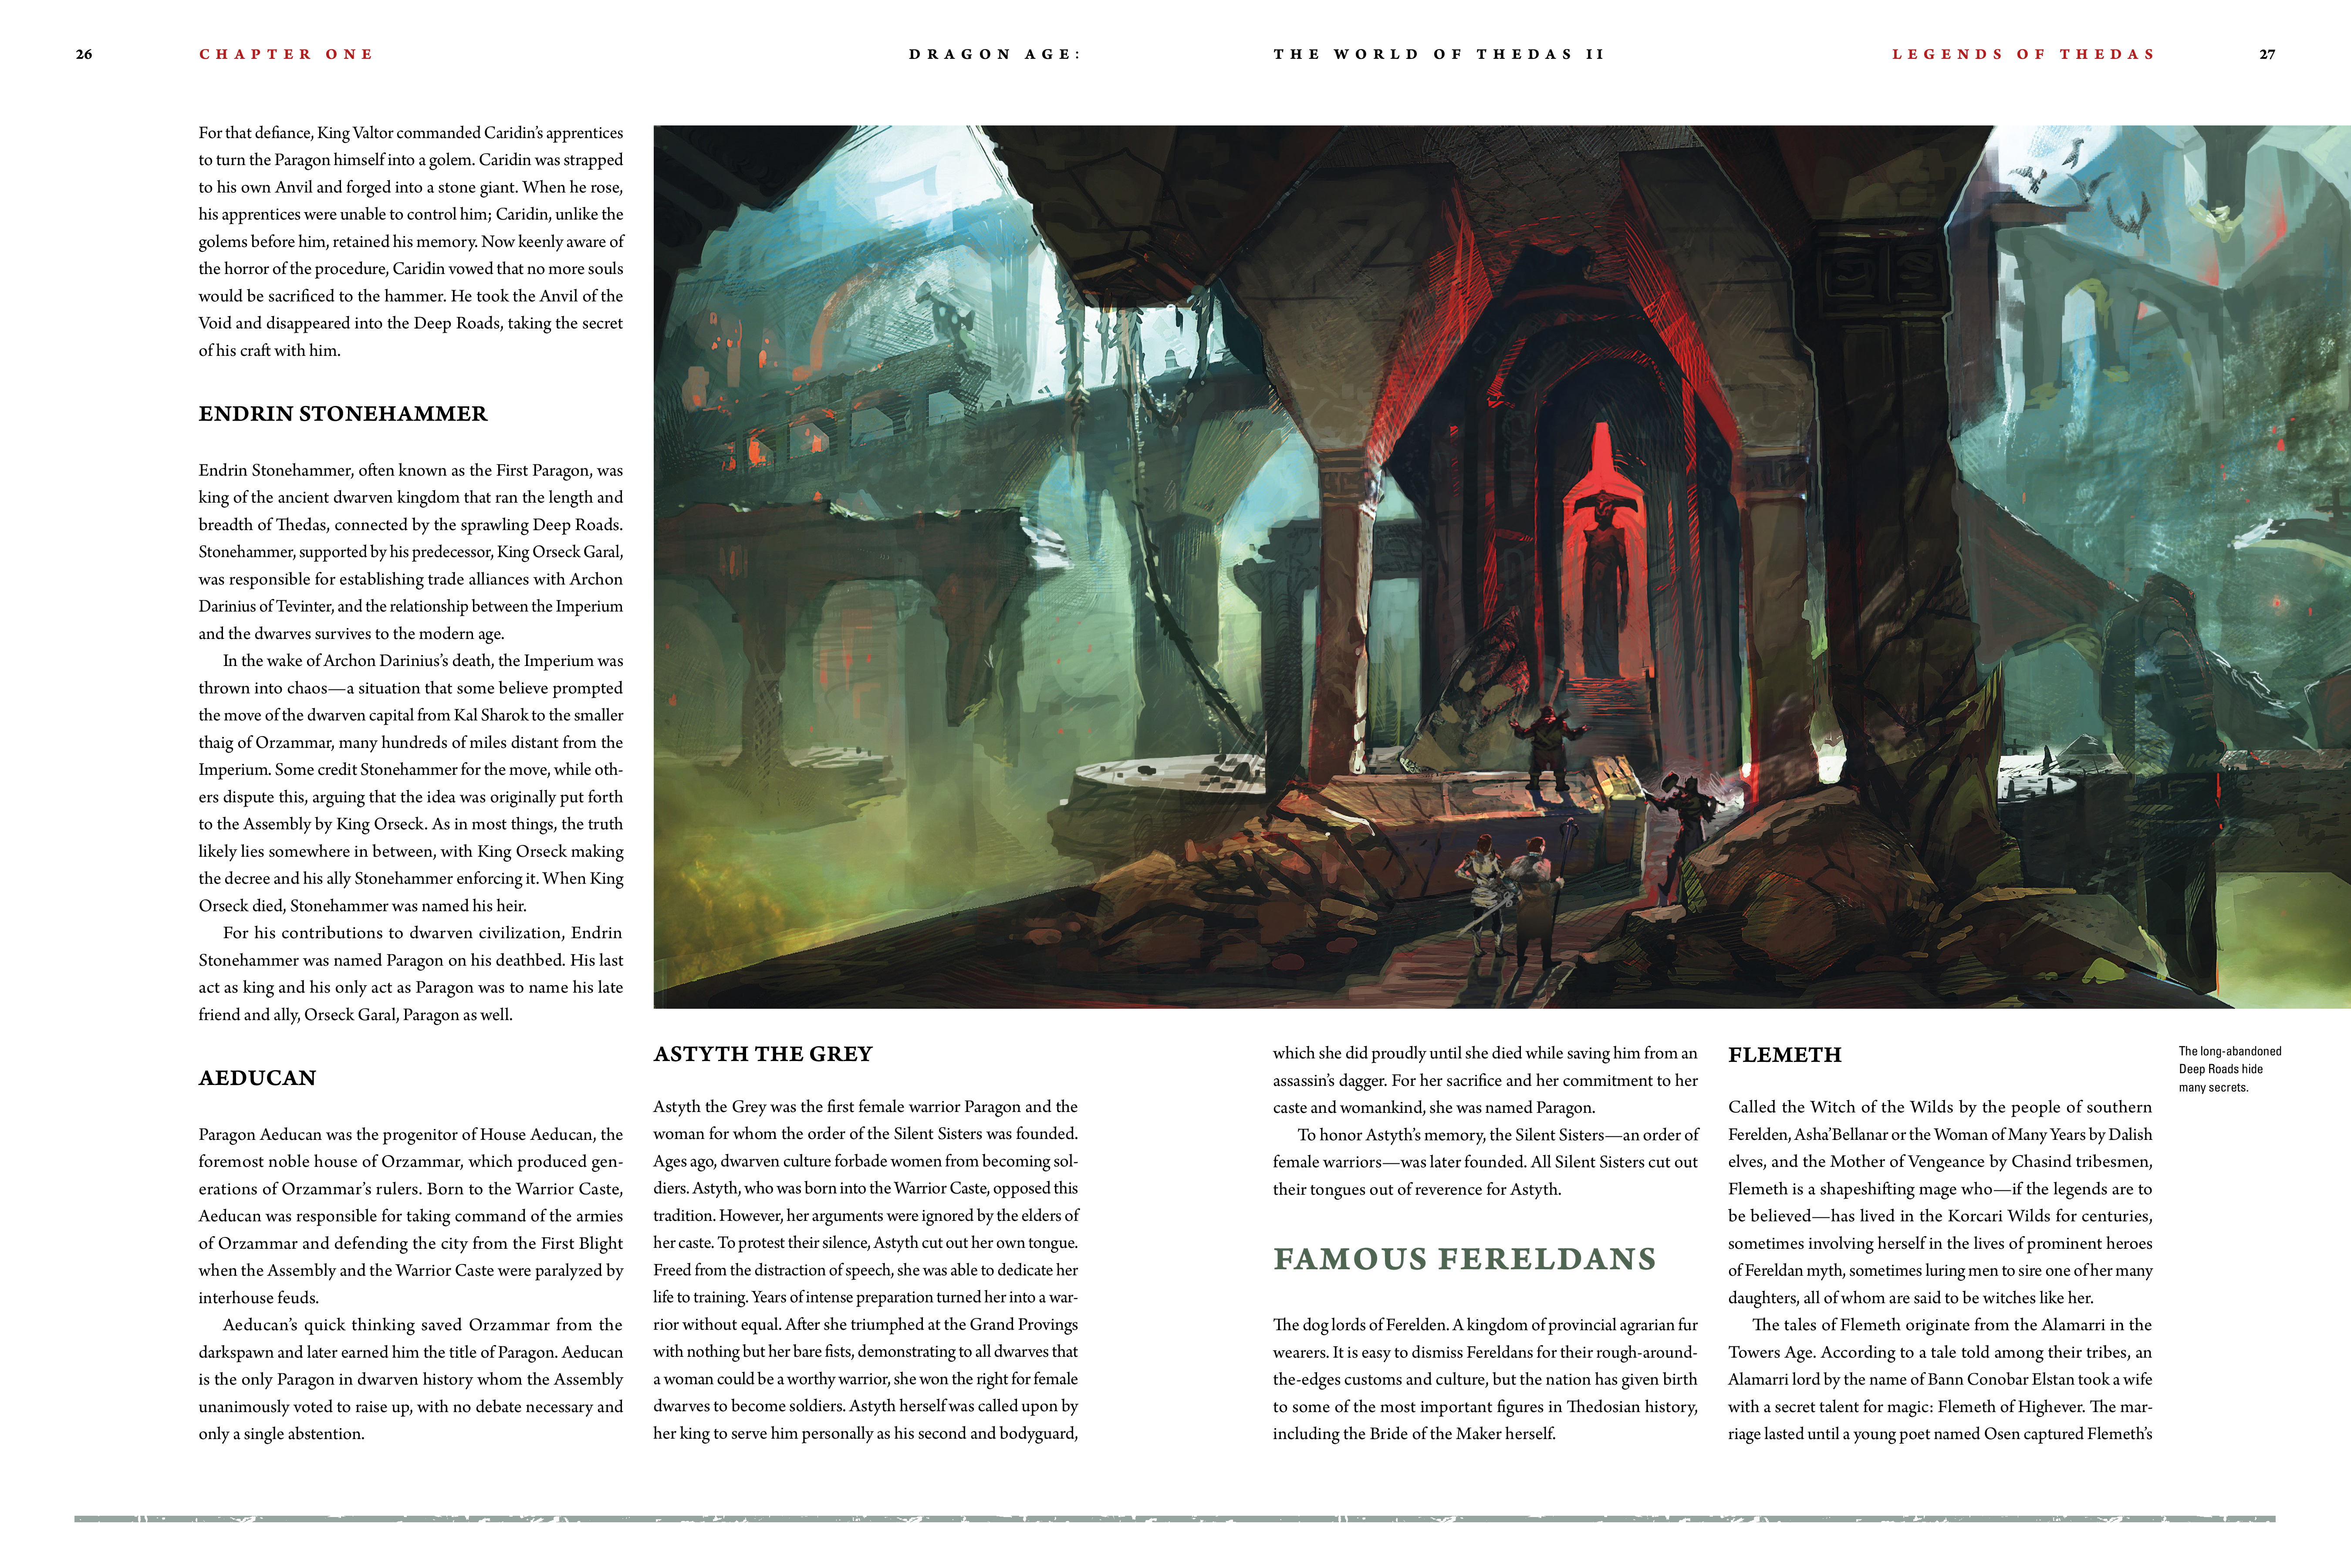 Read online Dragon Age: The World of Thedas comic -  Issue # TPB 2 - 24